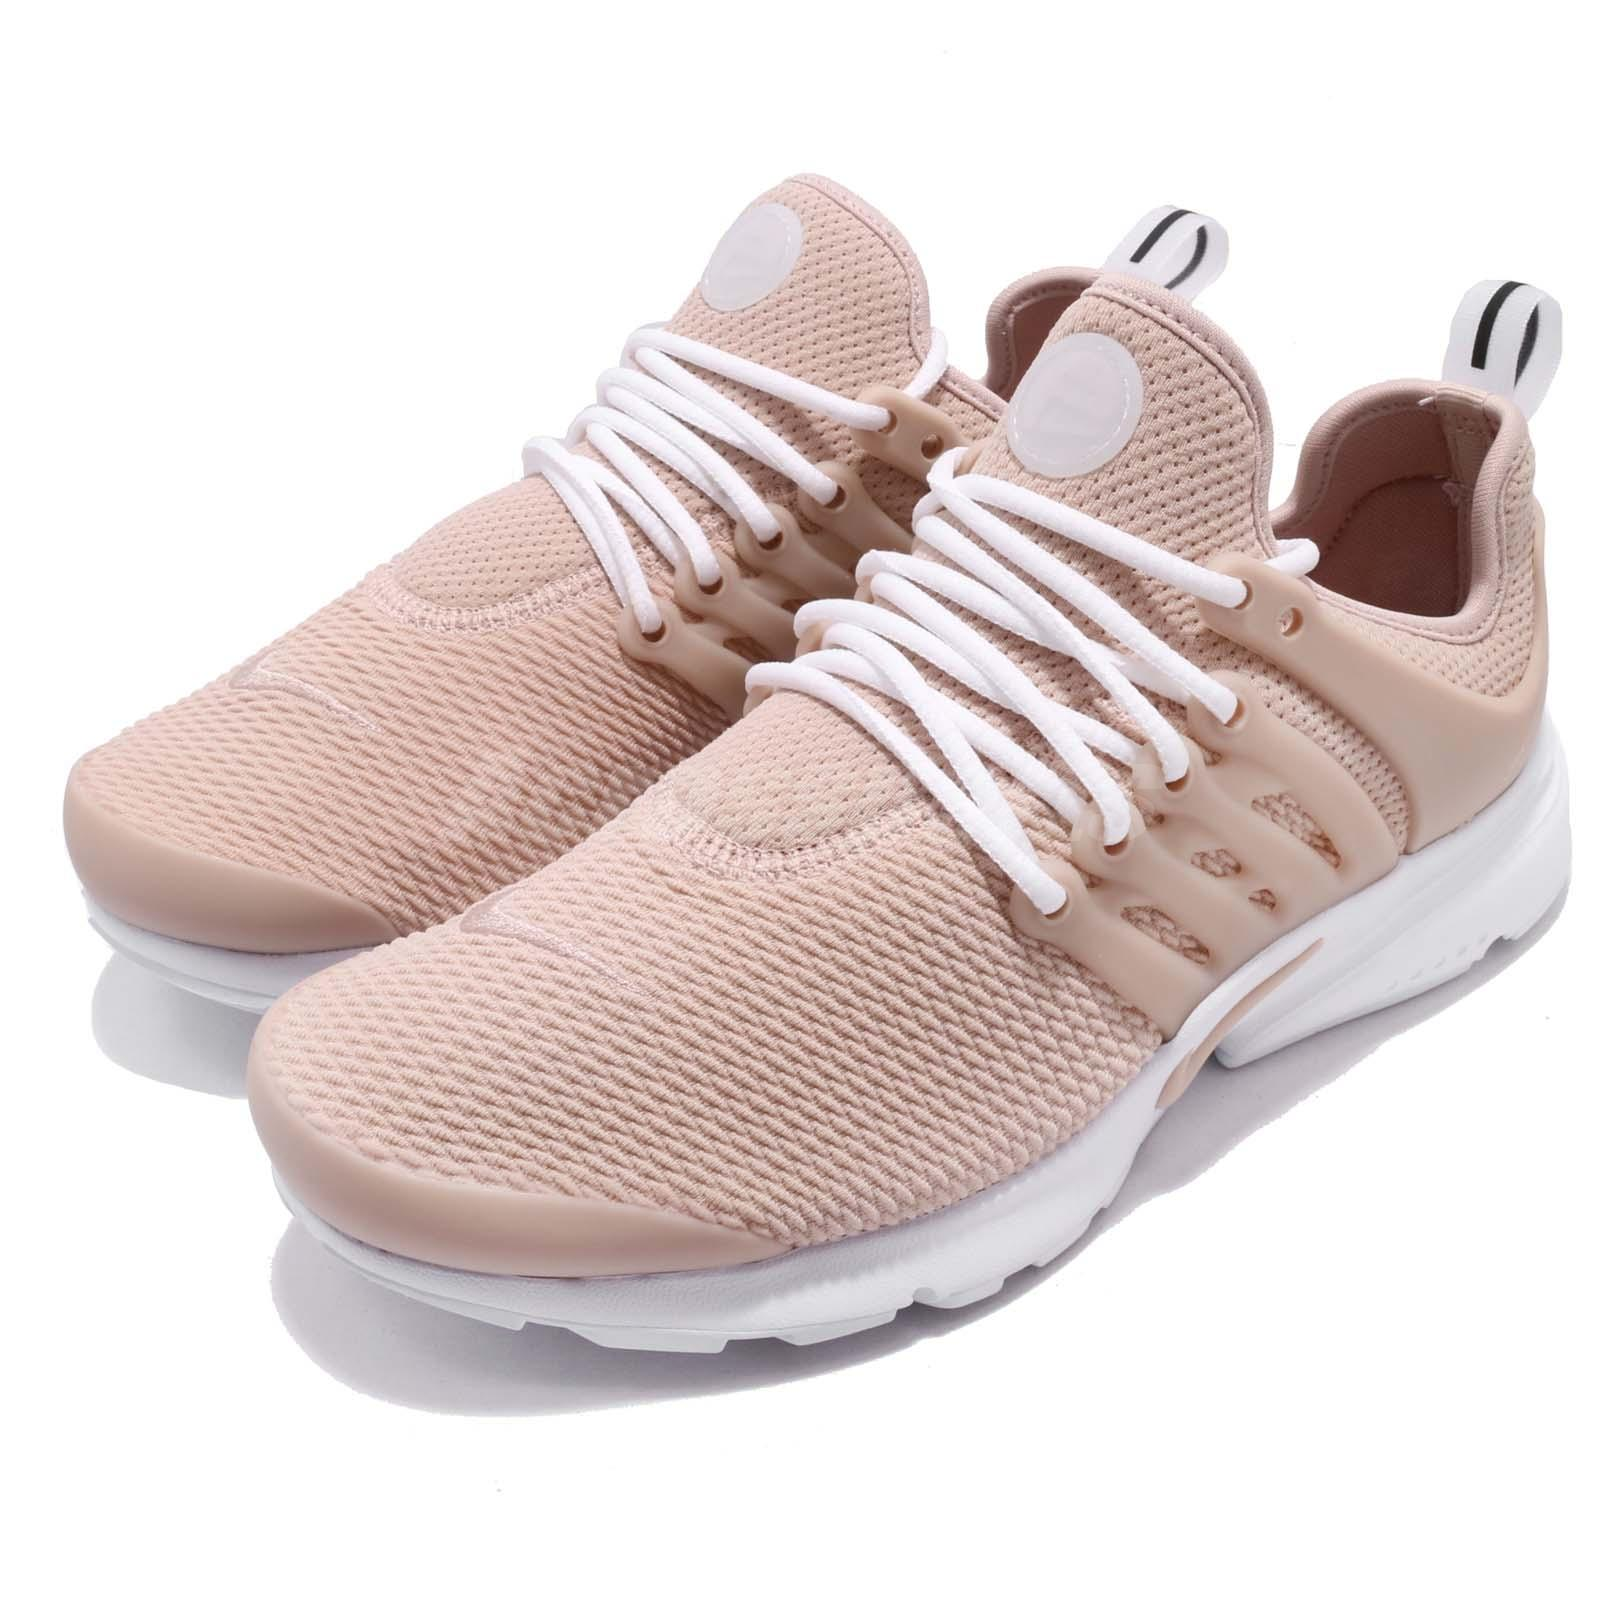 bafa10d6a4473e Details about Nike Wmns Air Presto Particle Beige Women Running Shoes  Sneakers 878068-201